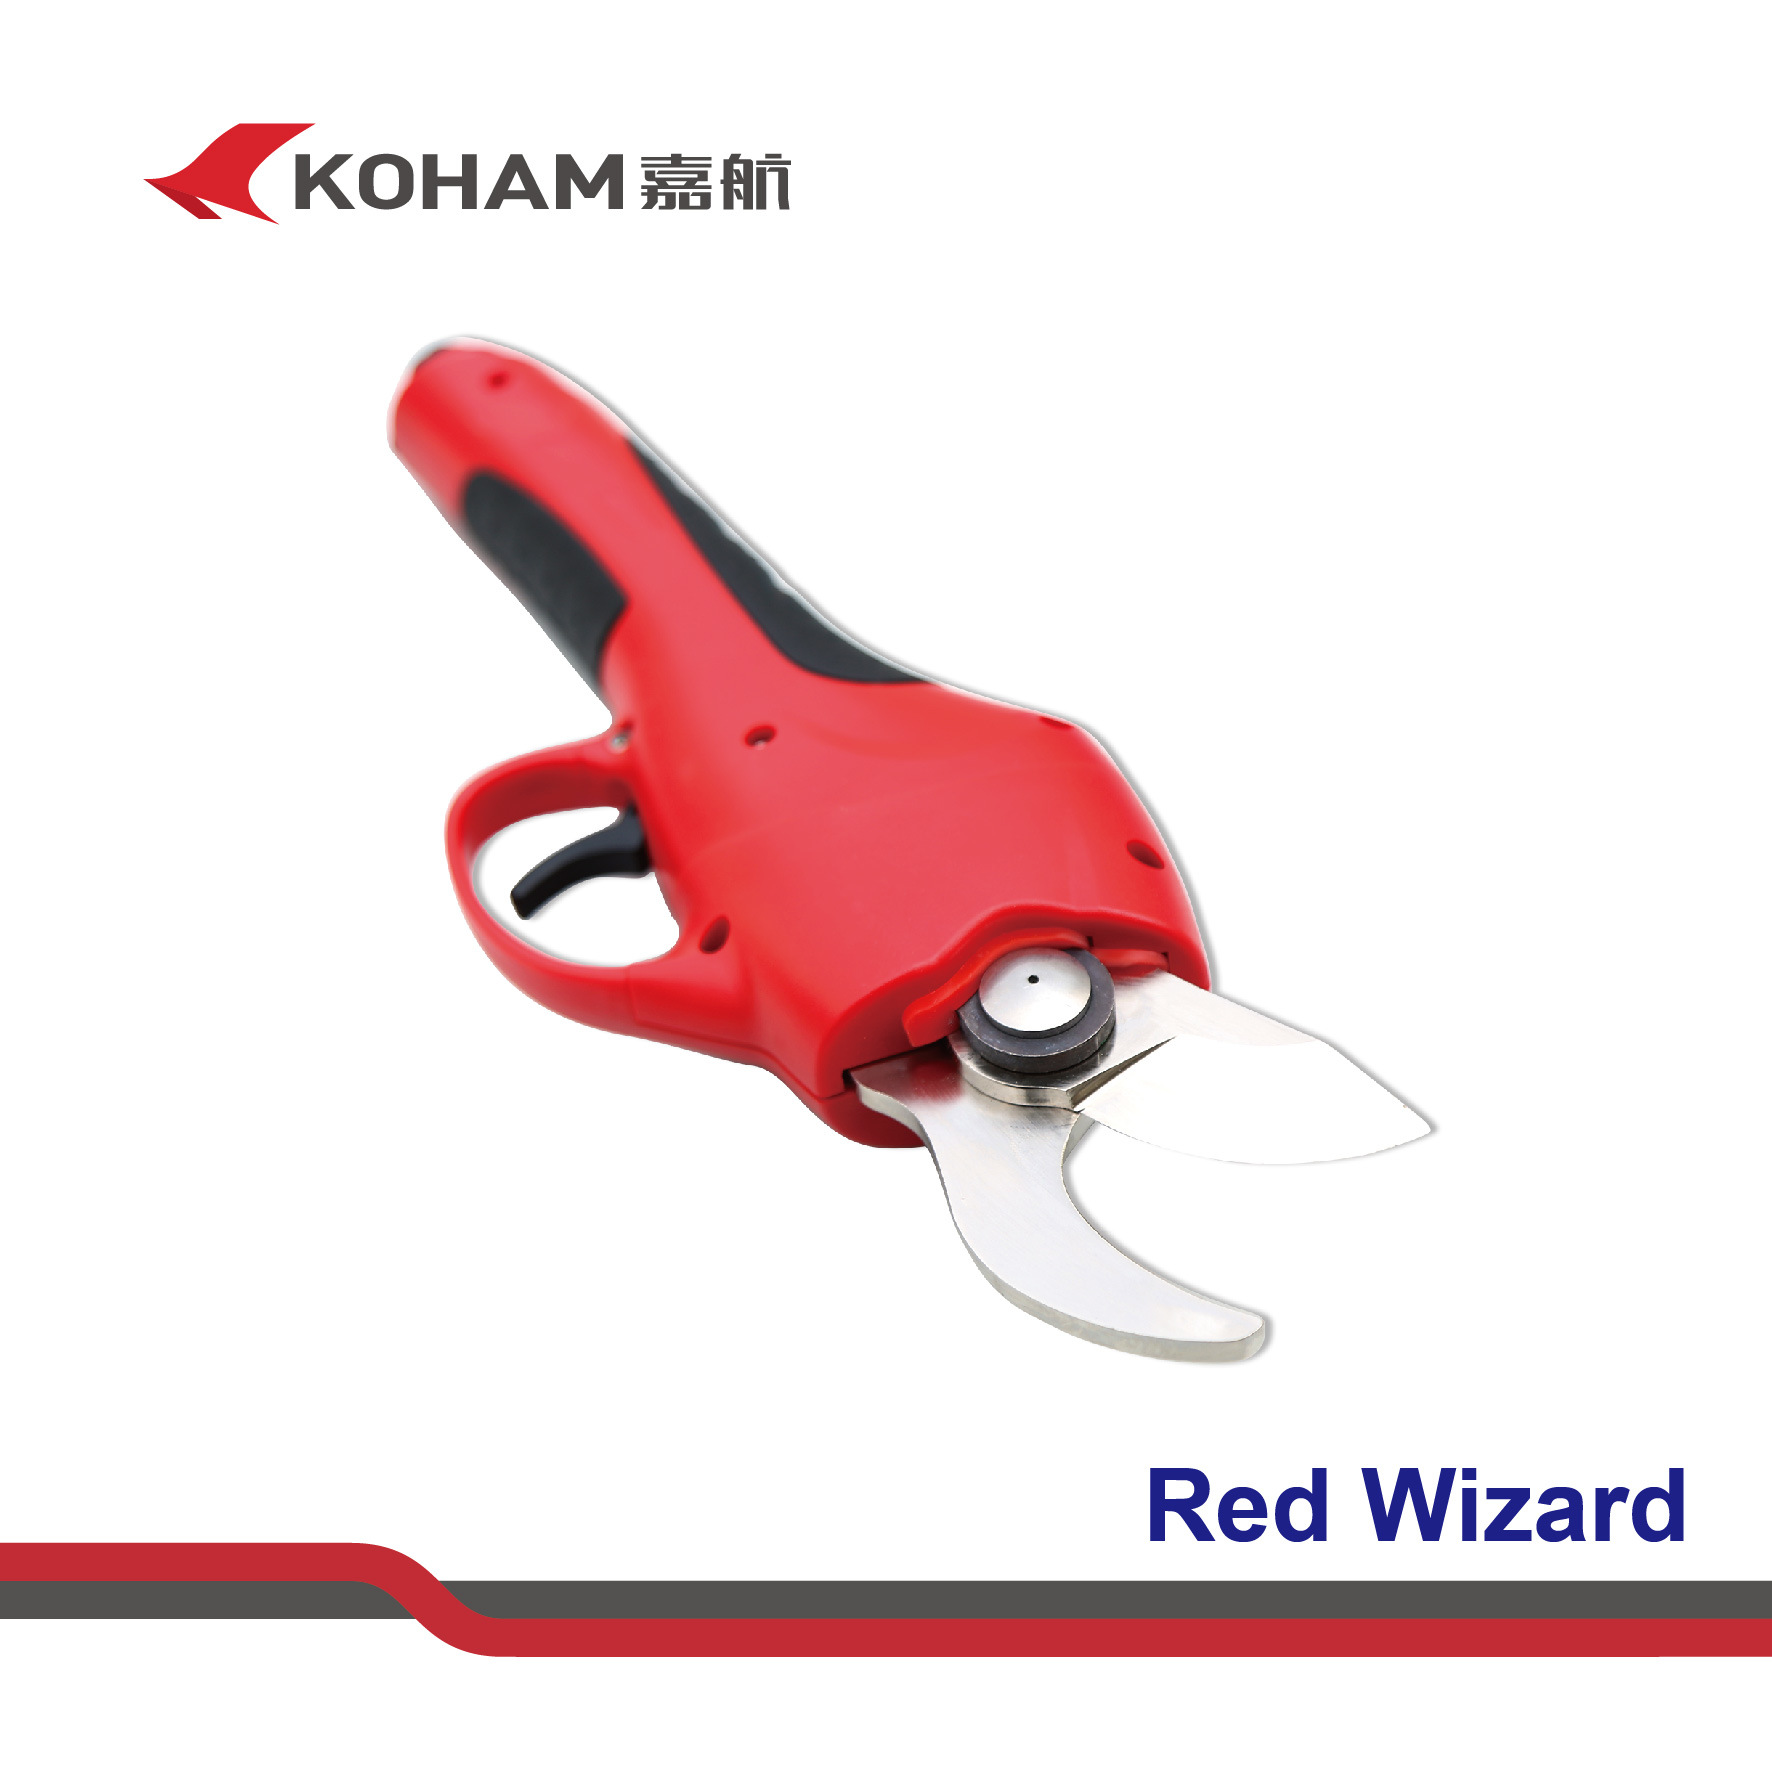 Koham 4.4ah-5c Lithium Battery Hedge Trimmer Tools